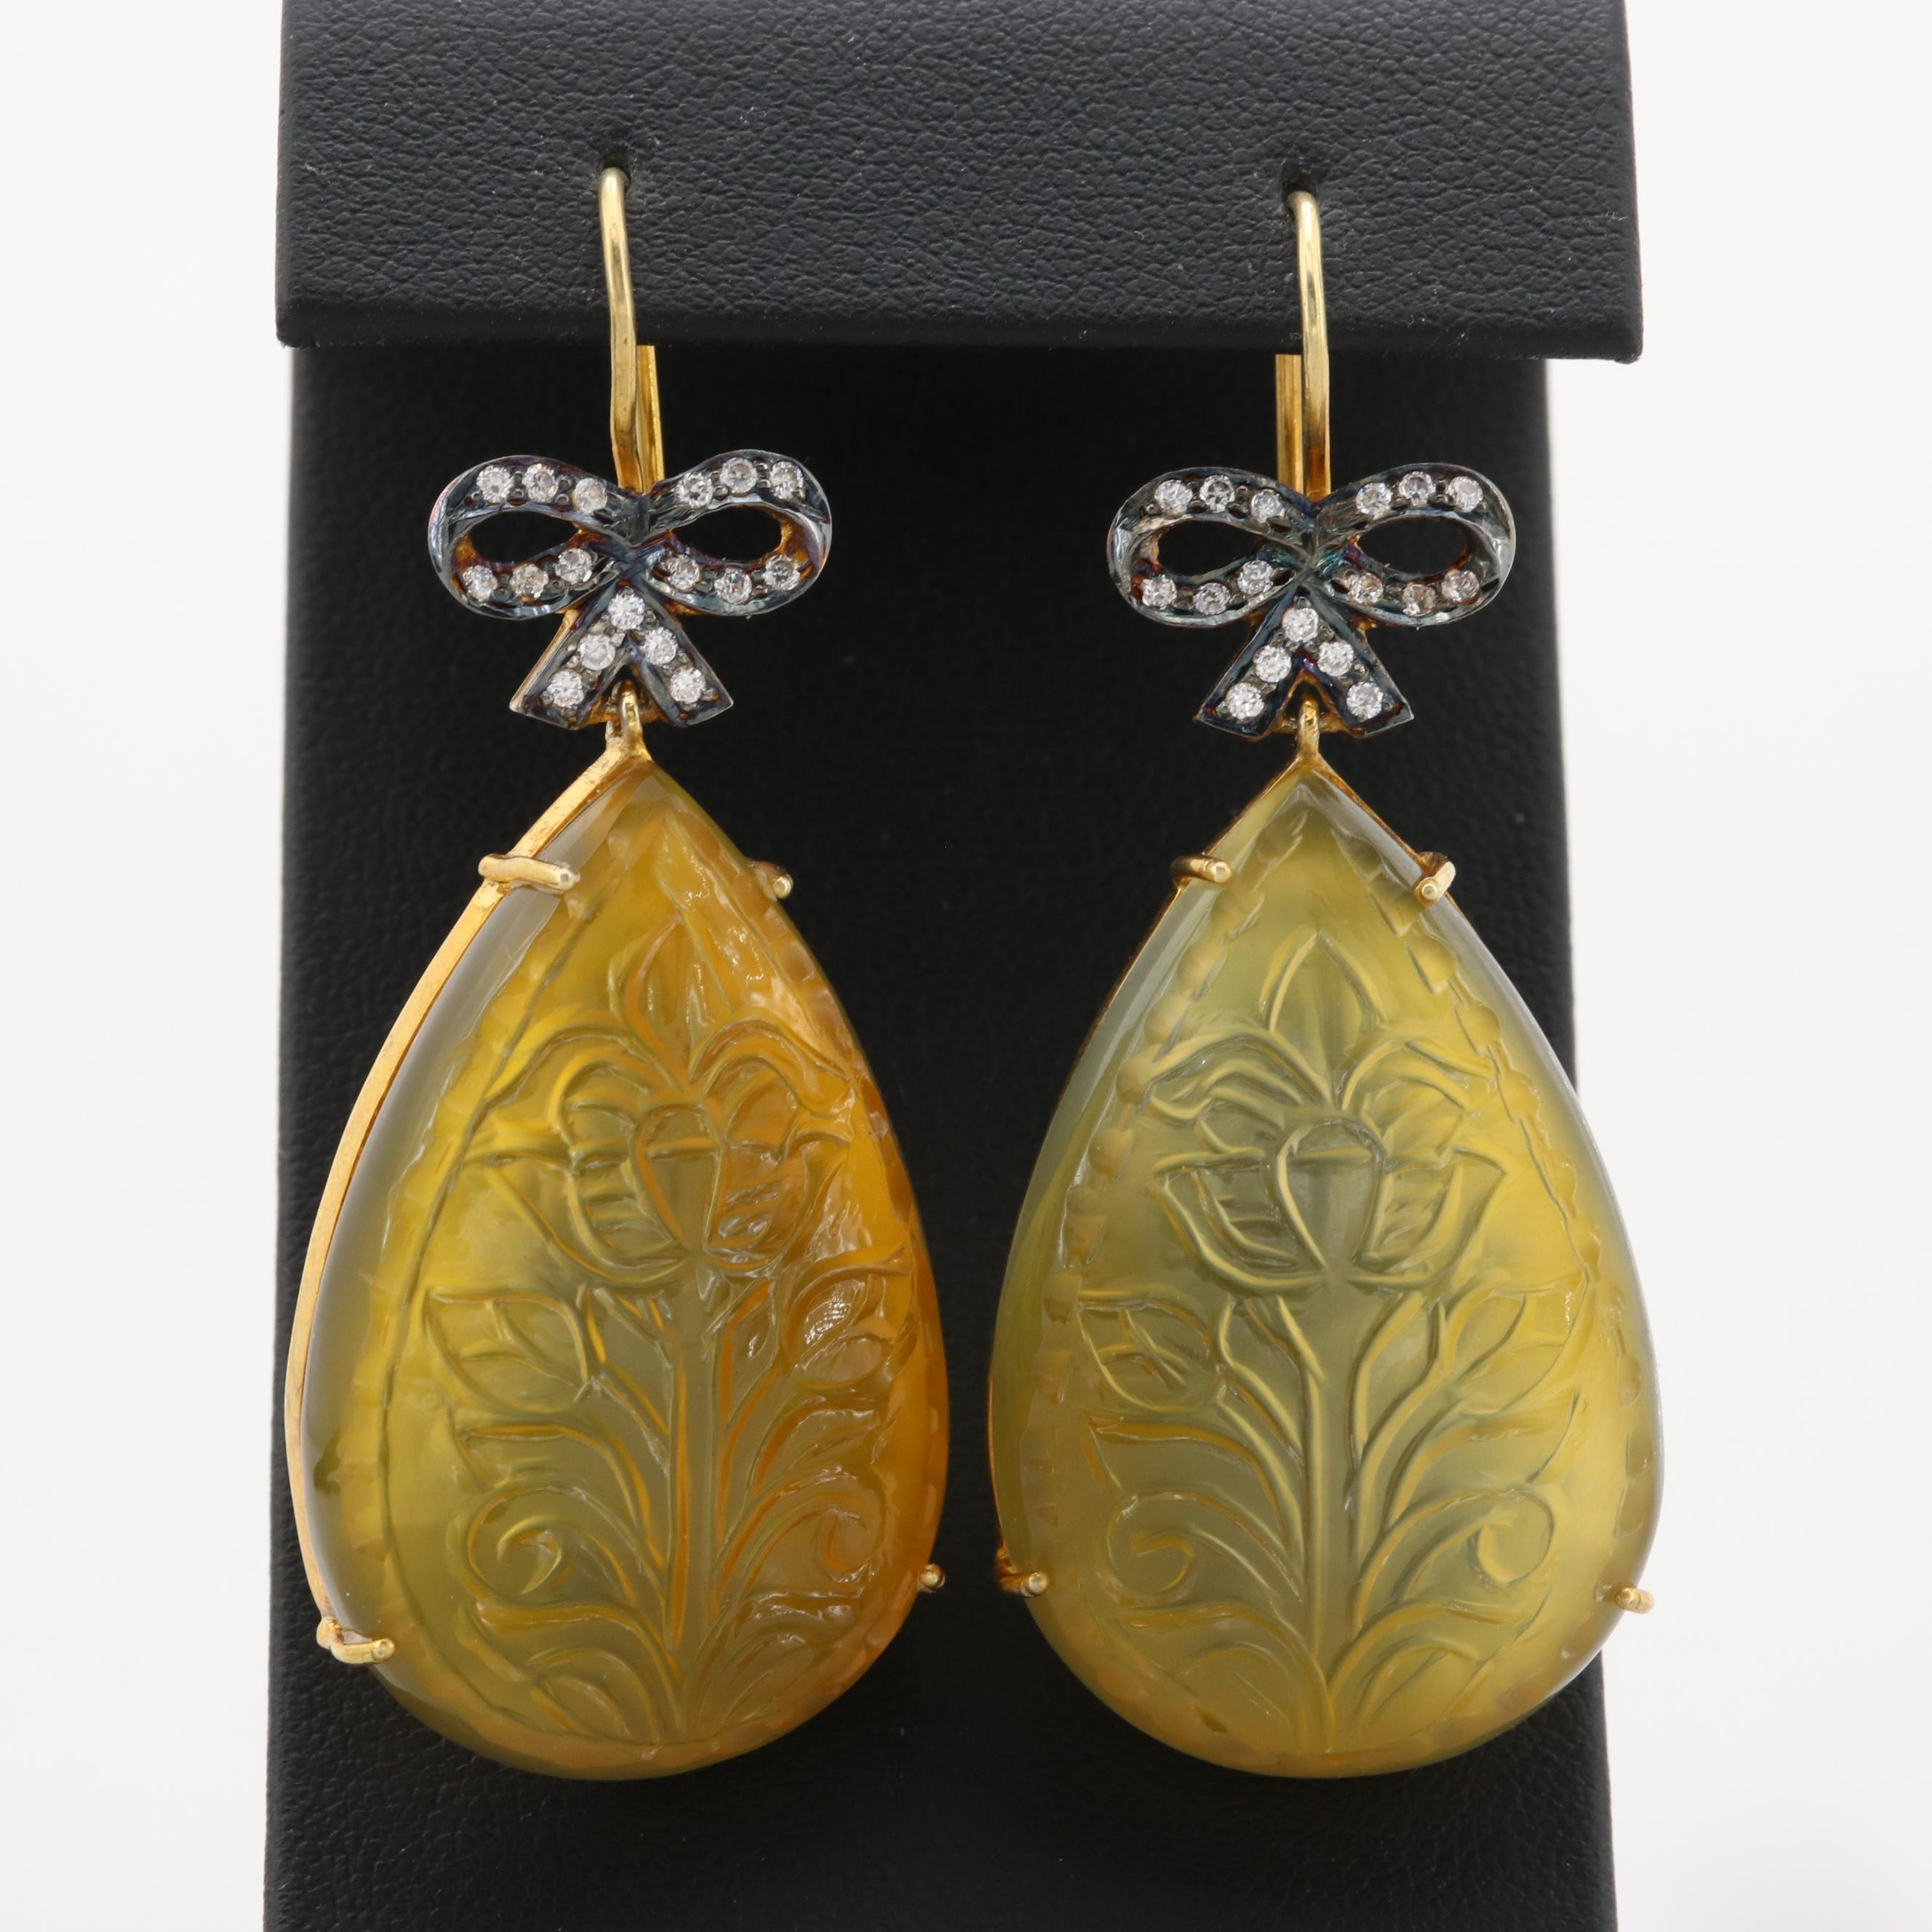 Gold Wash on Sterling Silver Glass and Cubic Zirconia Earrings